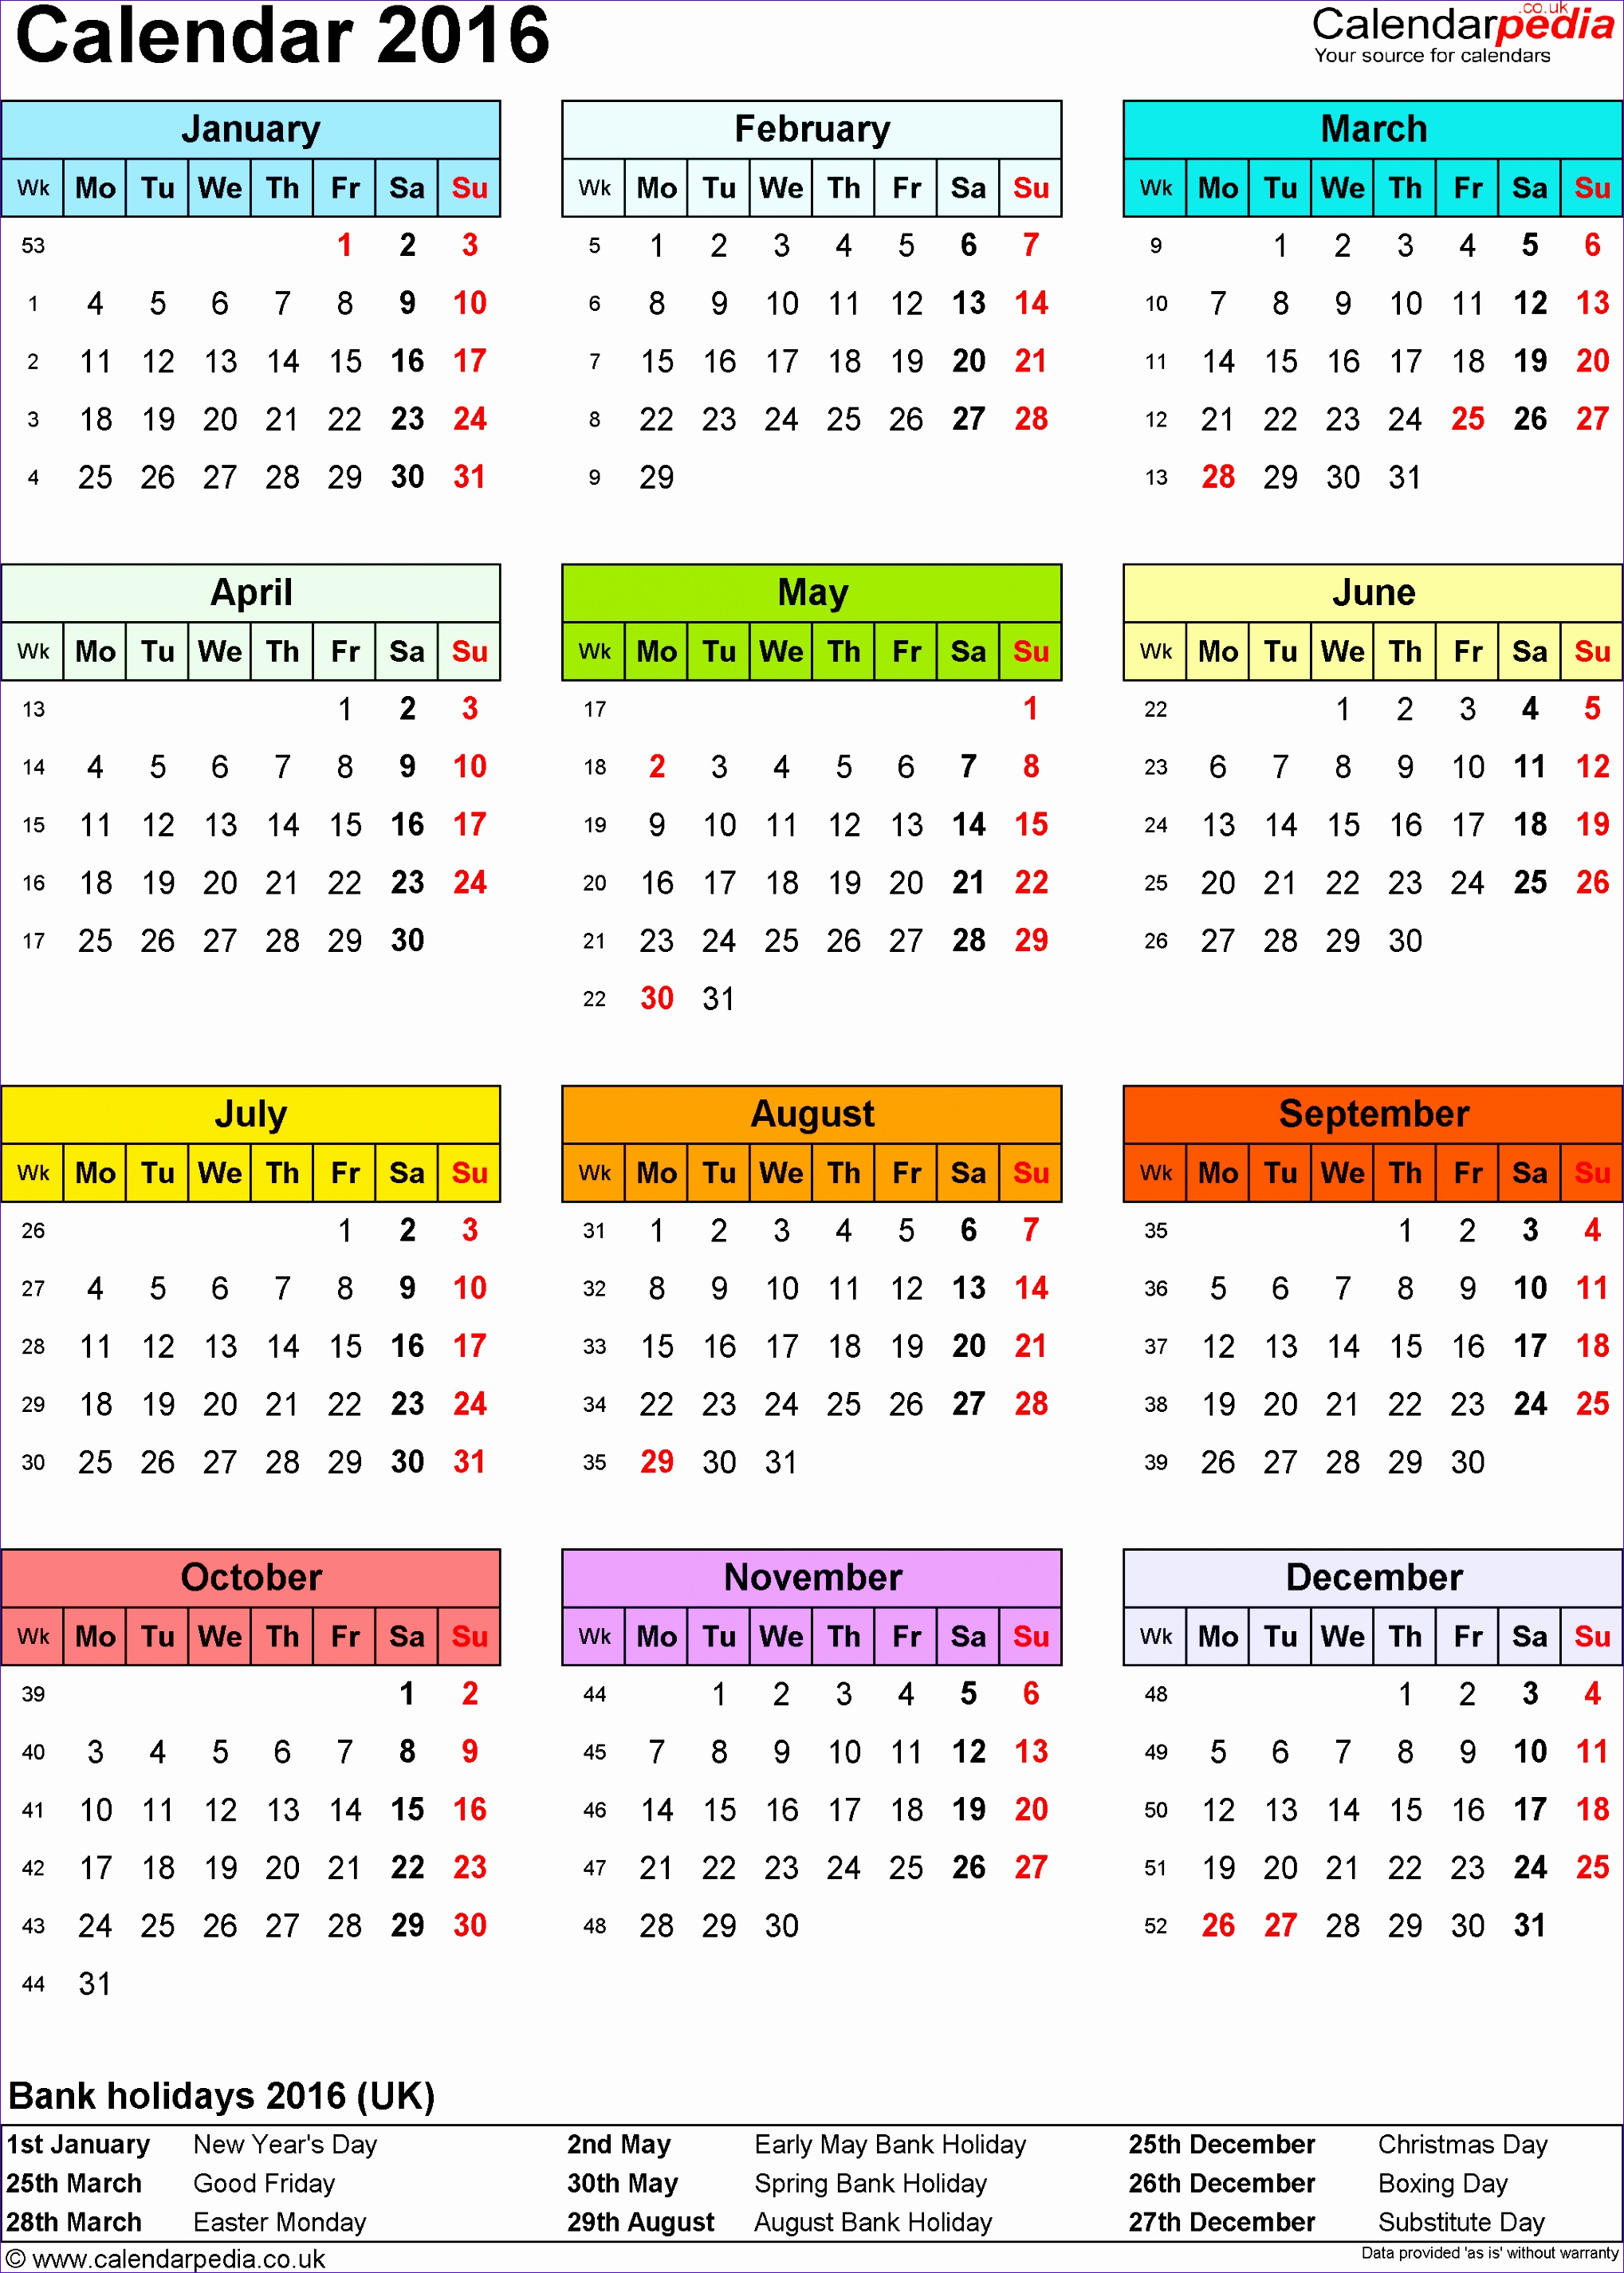 Staff Rota Template Excel Oojkx New Calendar 2016 Uk with Bank Holidays & Excel Pdf Word Templates